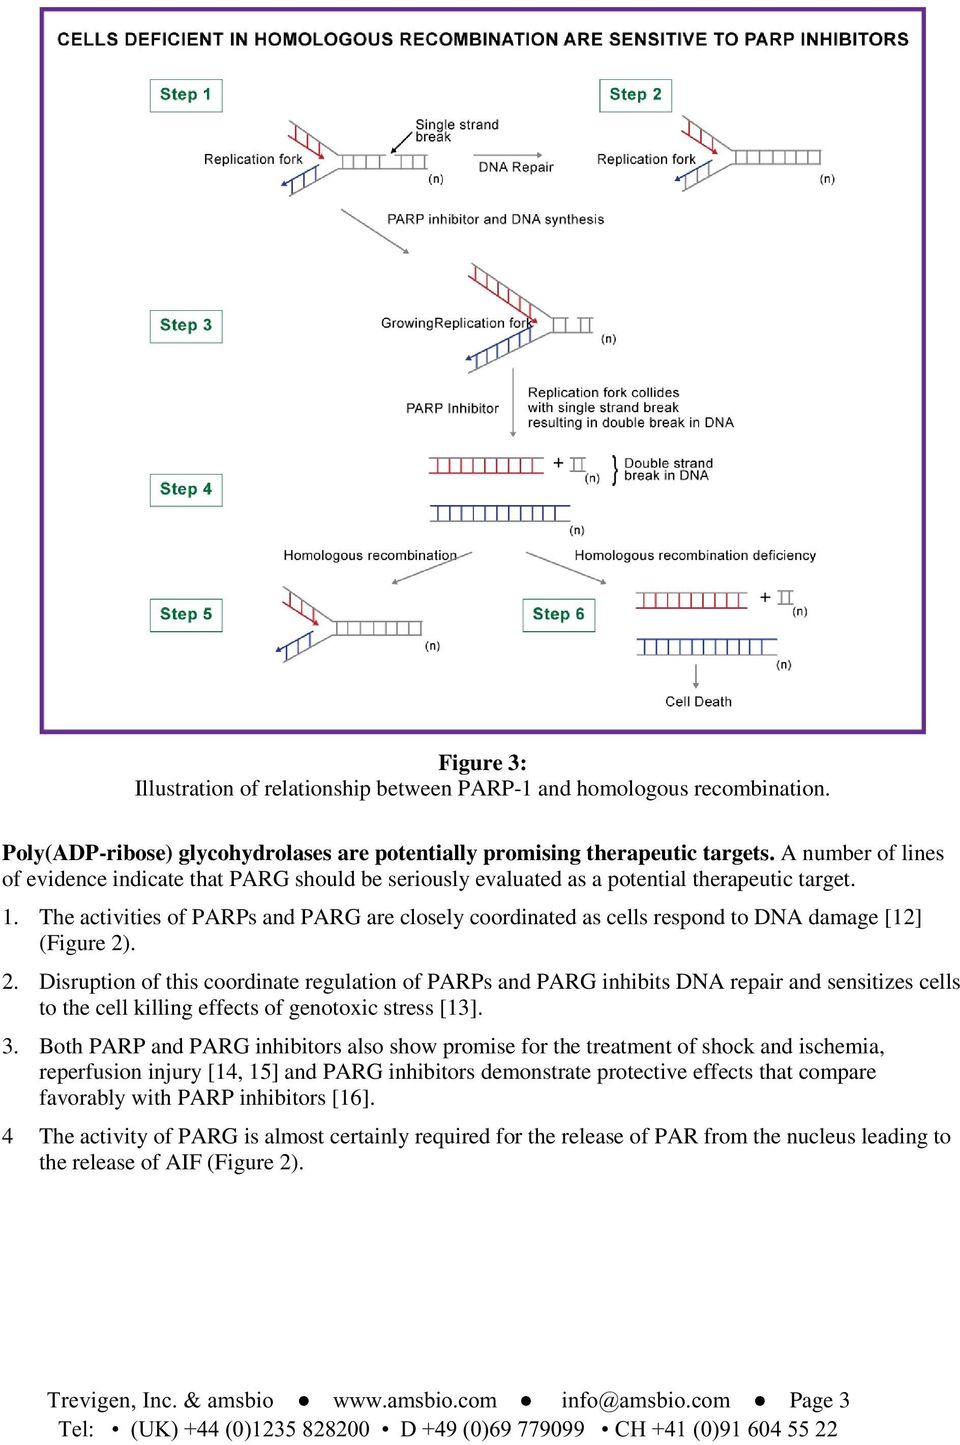 The activities of PARPs and PARG are closely coordinated as cells respond to DNA damage [12] (Figure 2)